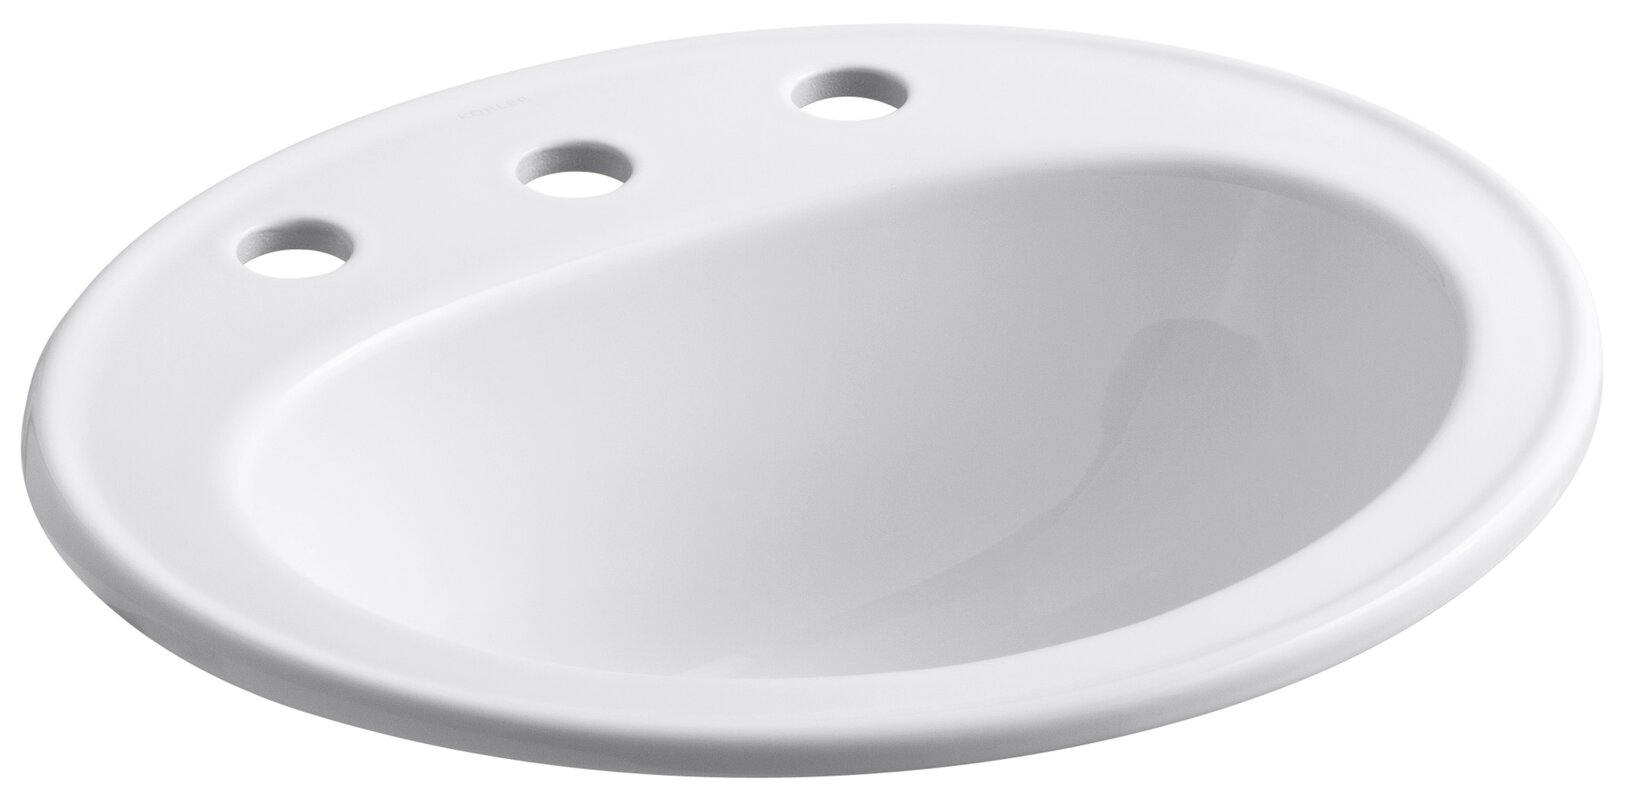 Kohler Pennington Ceramic Oval Drop In Bathroom Sink With Overflow Reviews